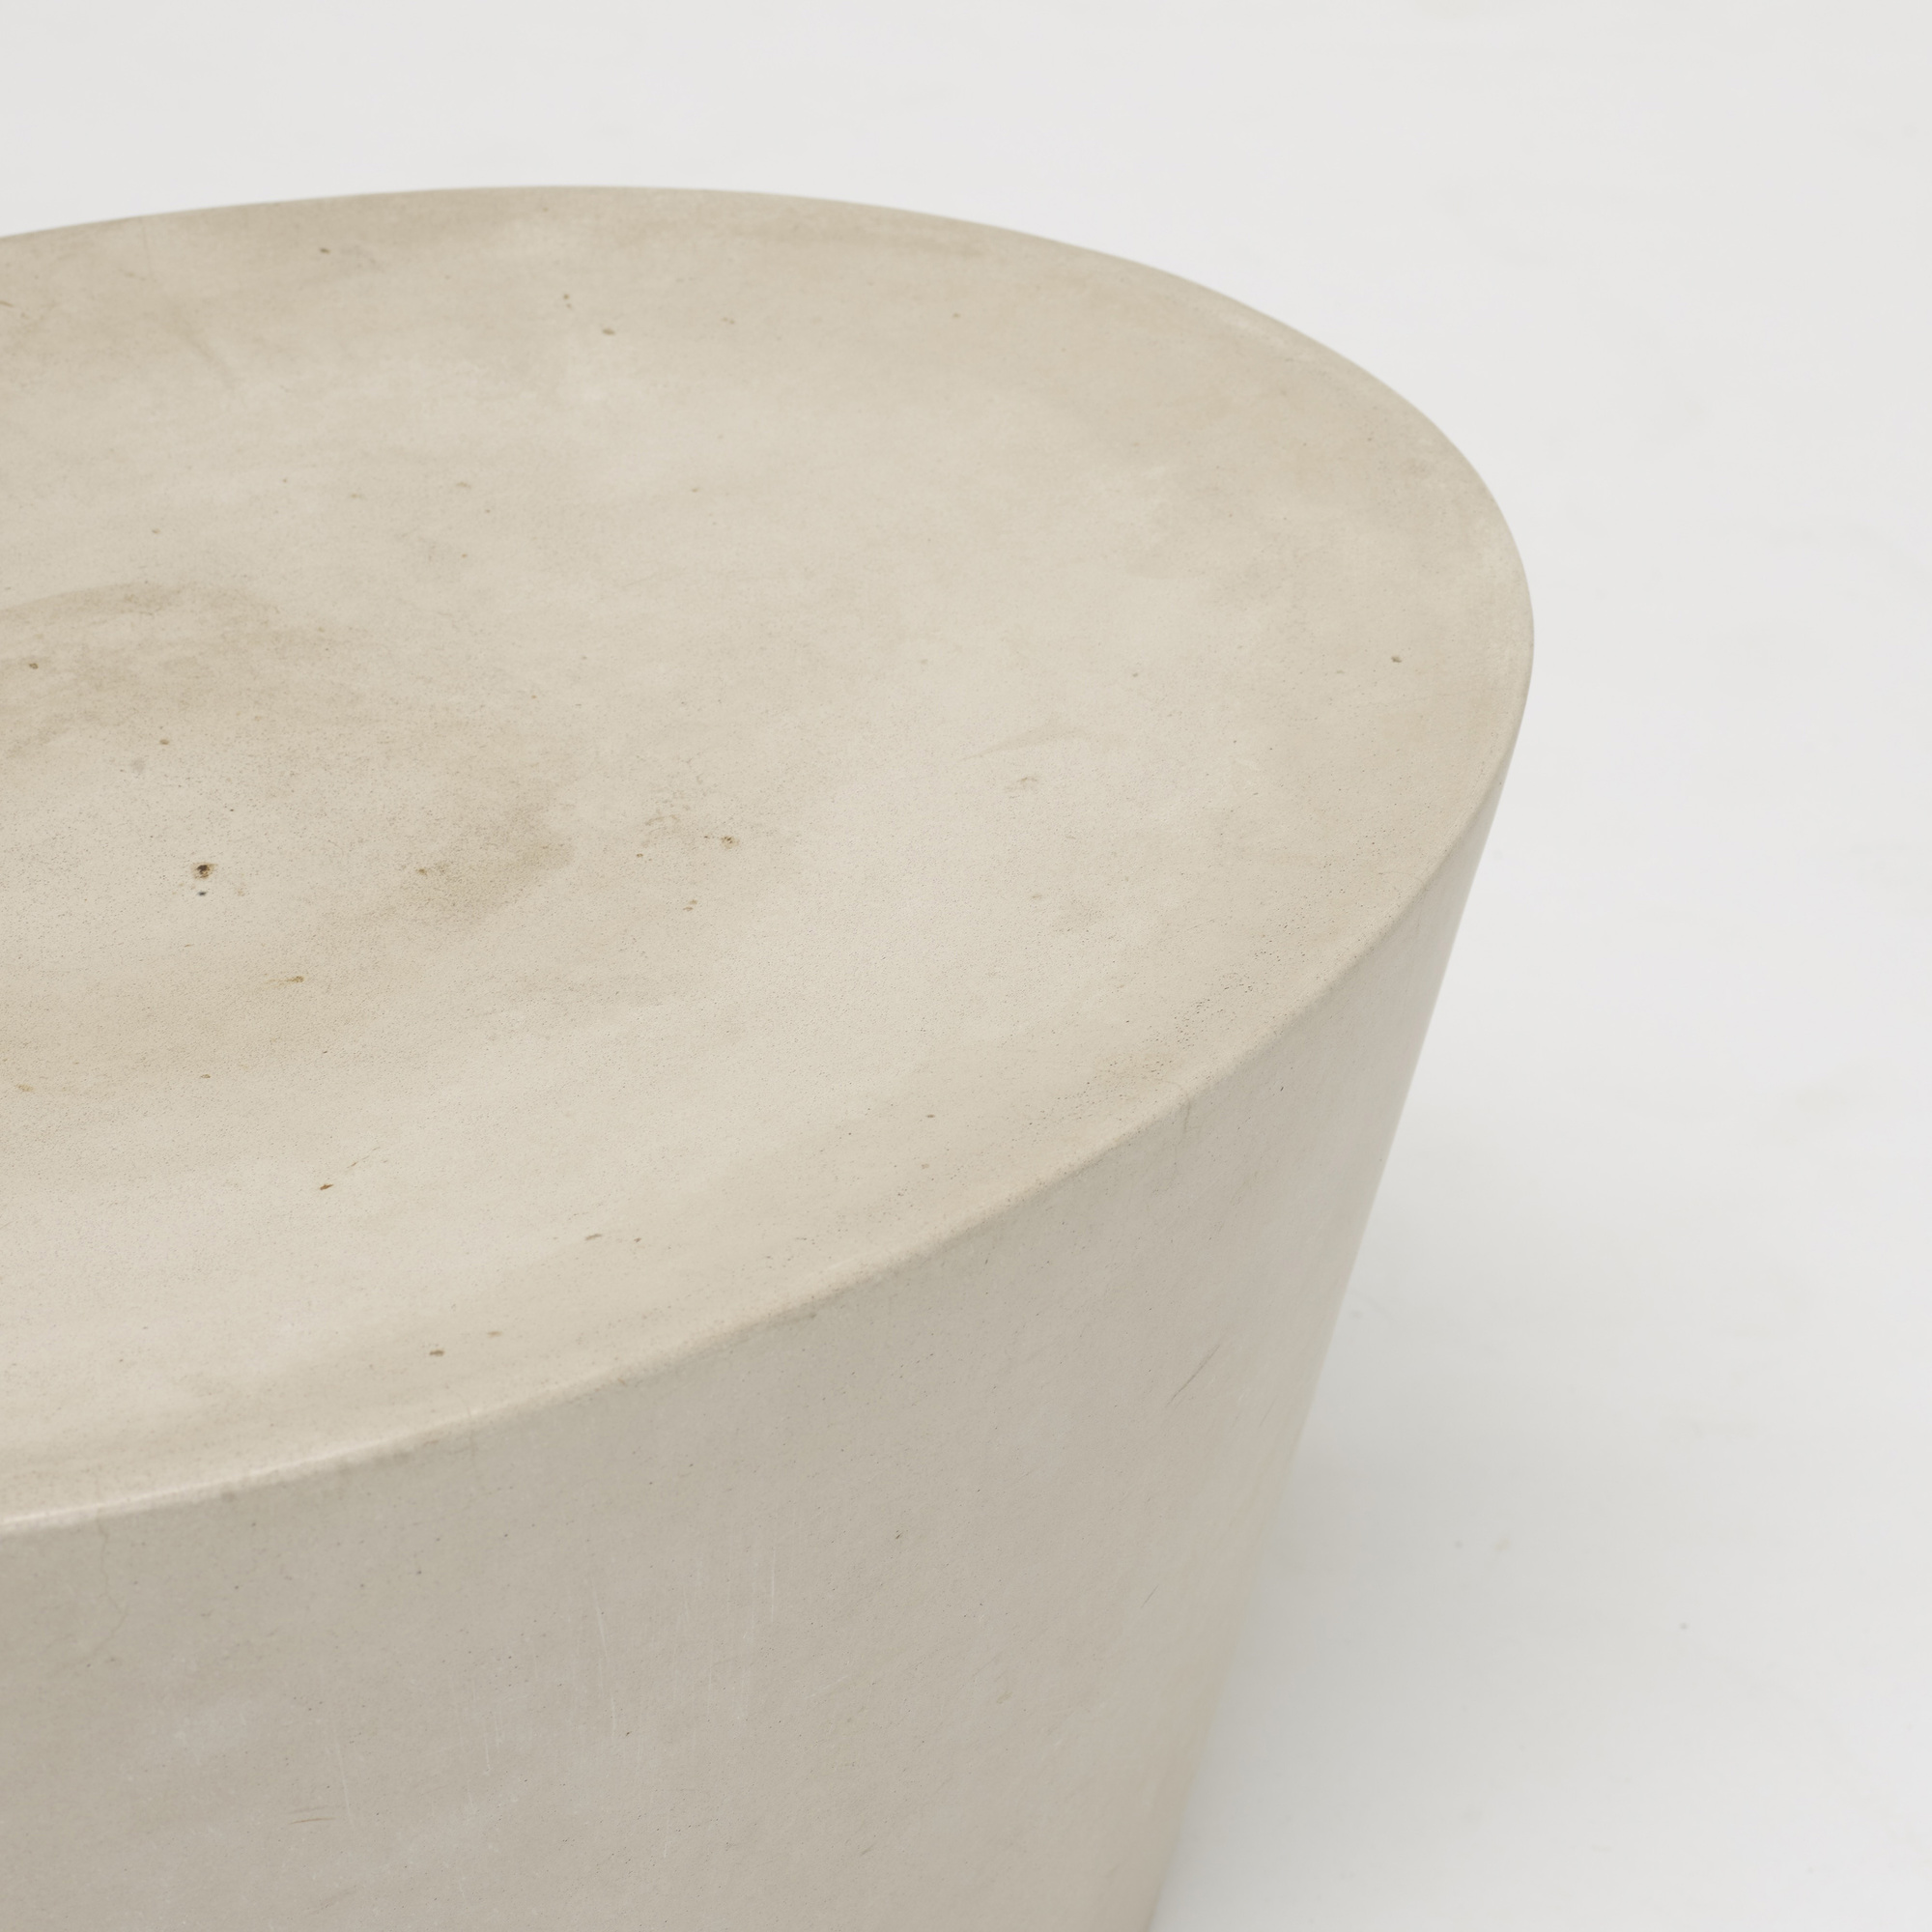 511: Maya Lin / Stone stool (2 of 2)